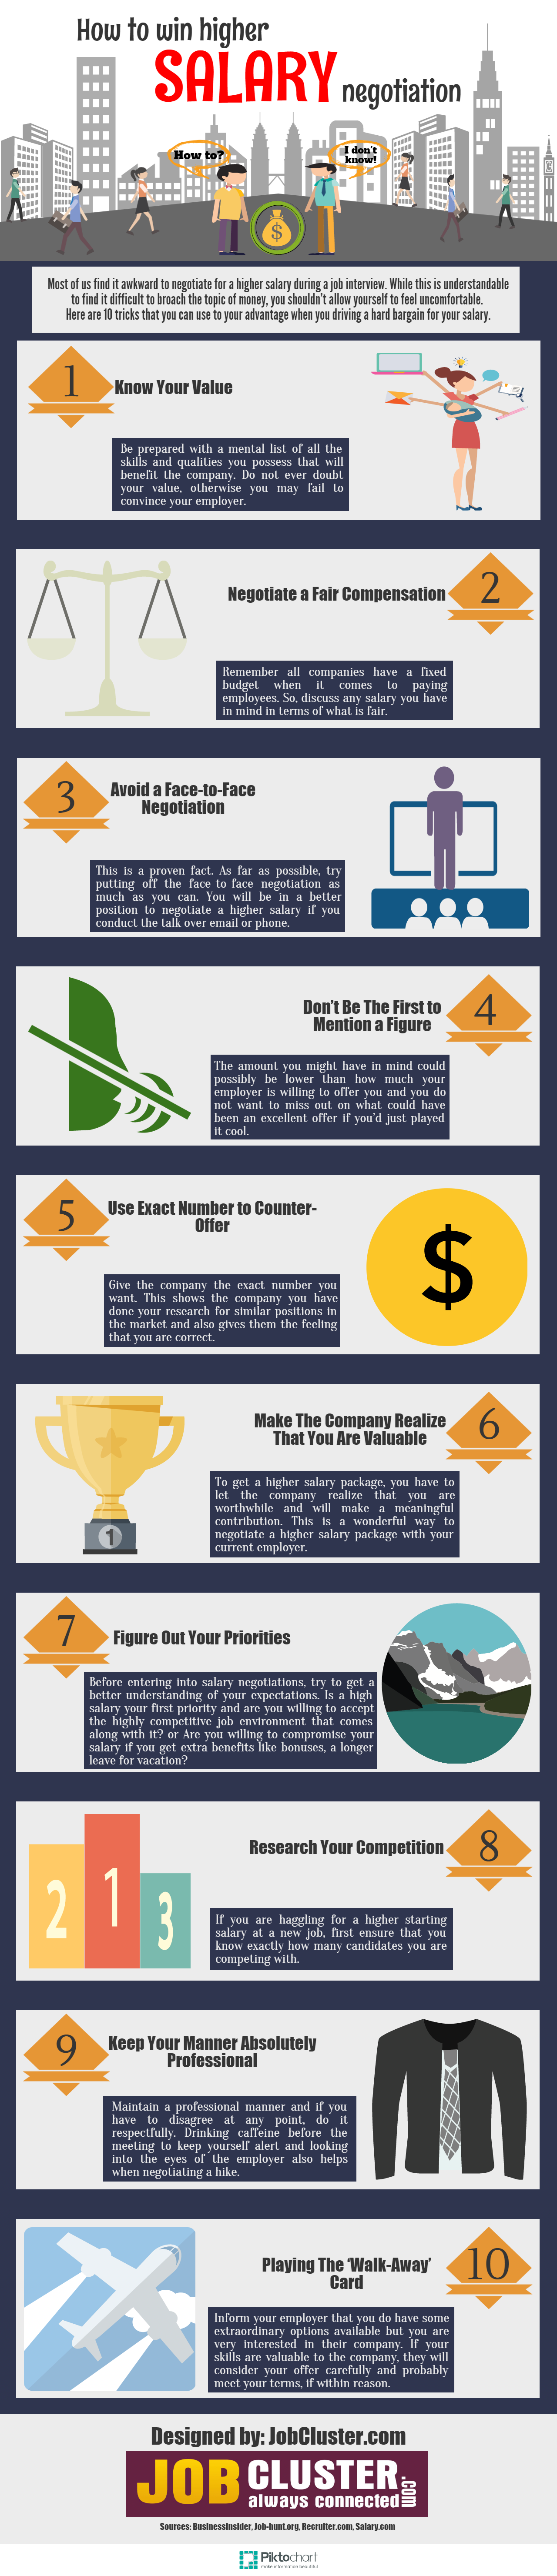 How to win salary negotiation- infographic